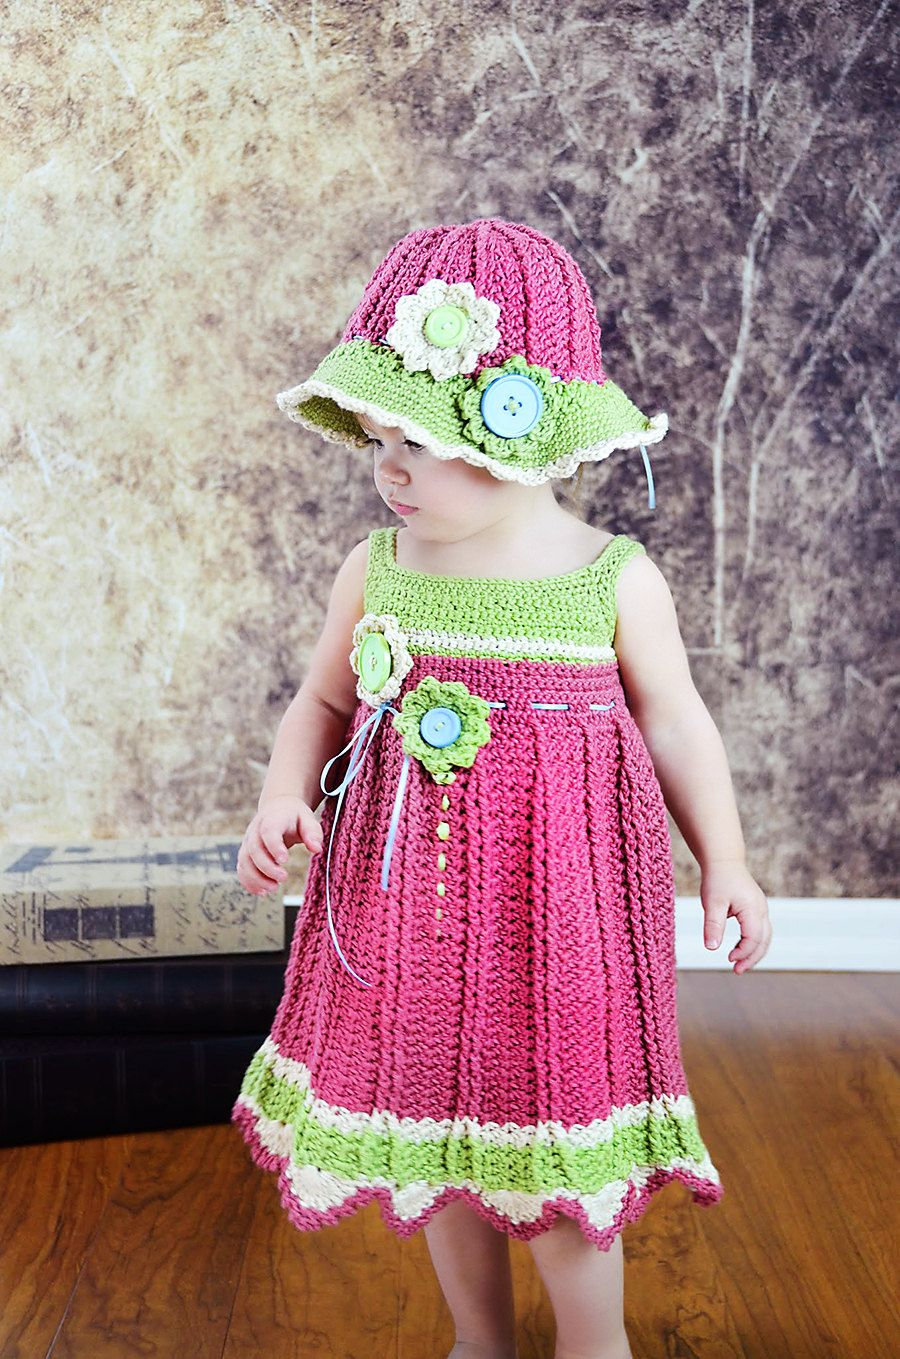 Crochet dress and matching hat on etsy, just precious | crochet ...